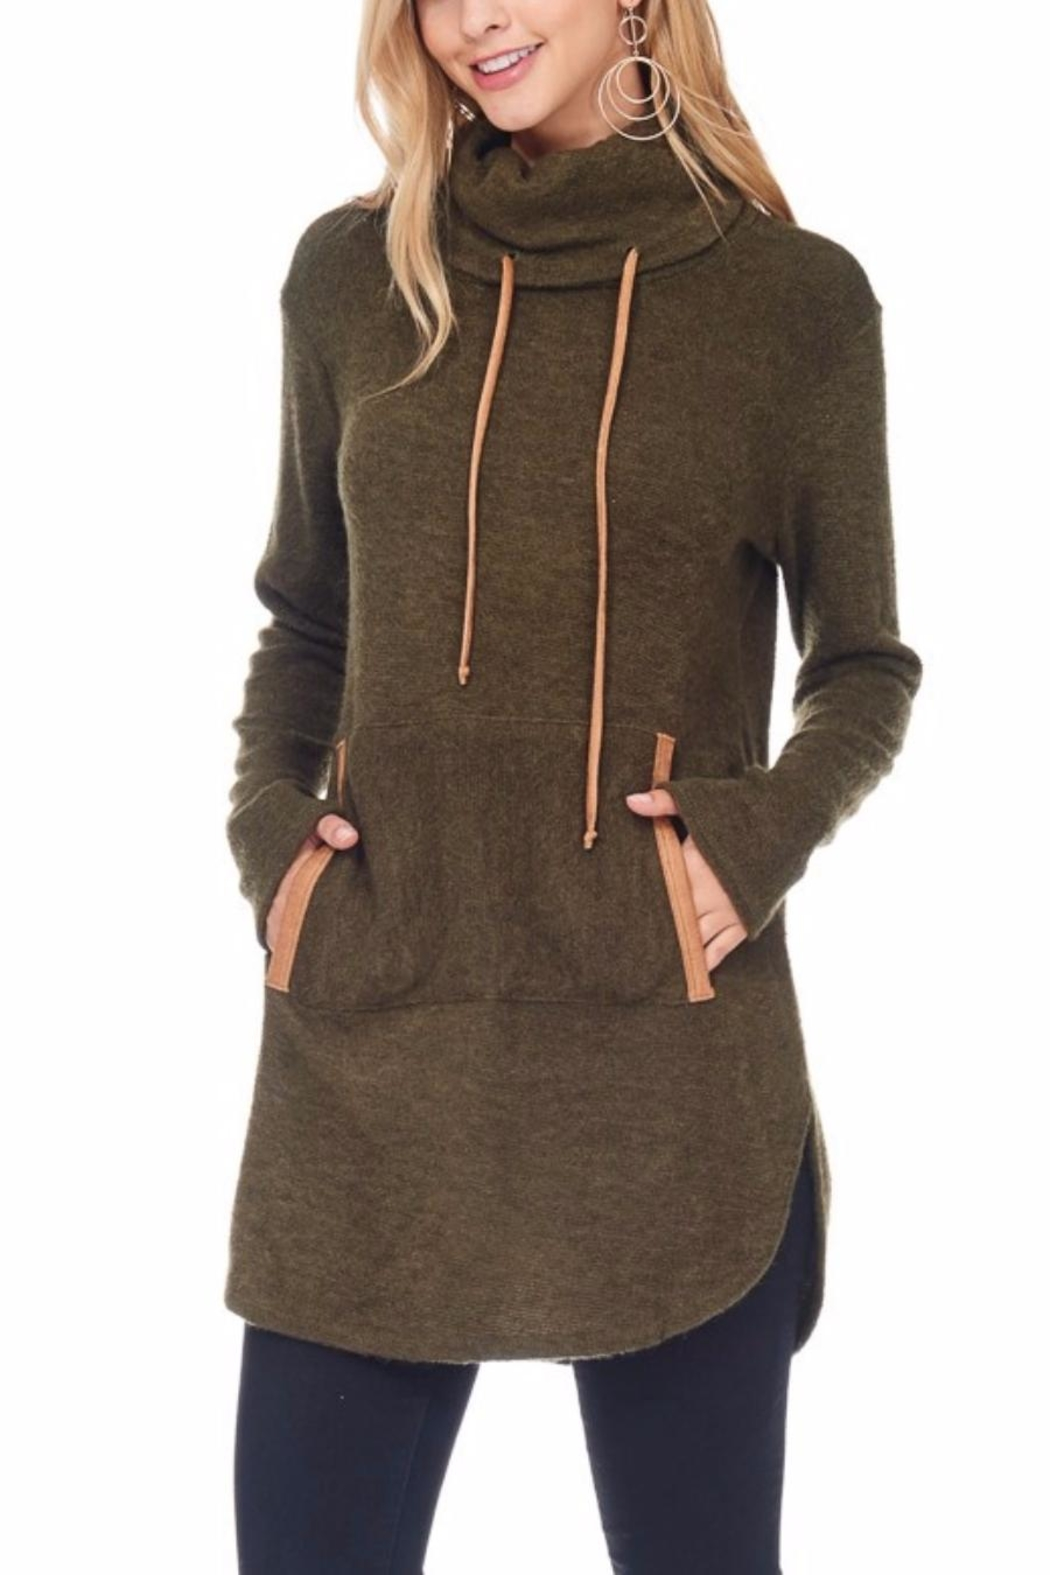 Hailey & Co. Highneck Sweater Tunic - Main Image